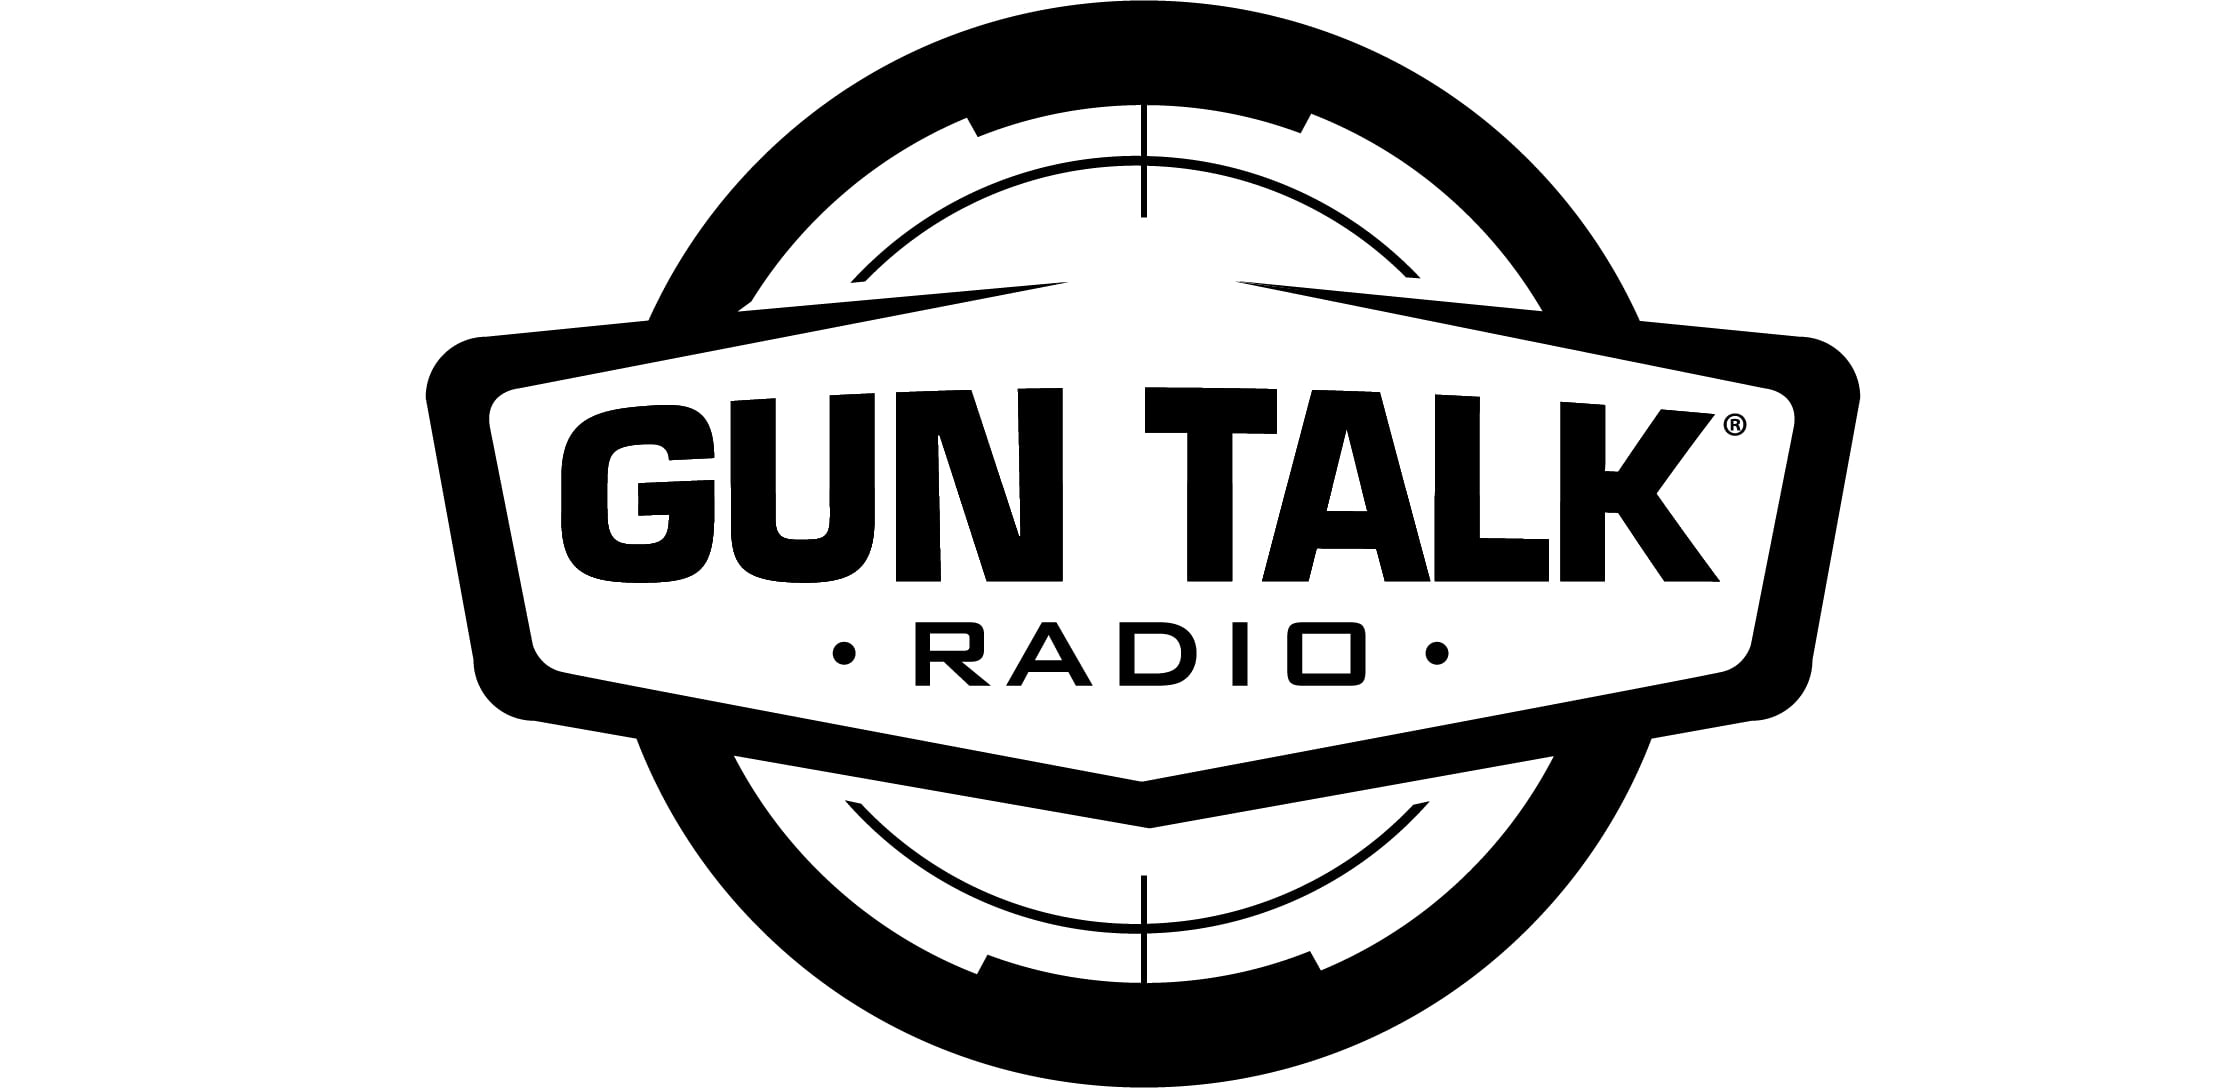 Artwork for Collegiate Hunting Programs; 6.5 Creedmoor; Levi's CEO Virtue Signaling: Gun Talk Radio| 3.10.19 B